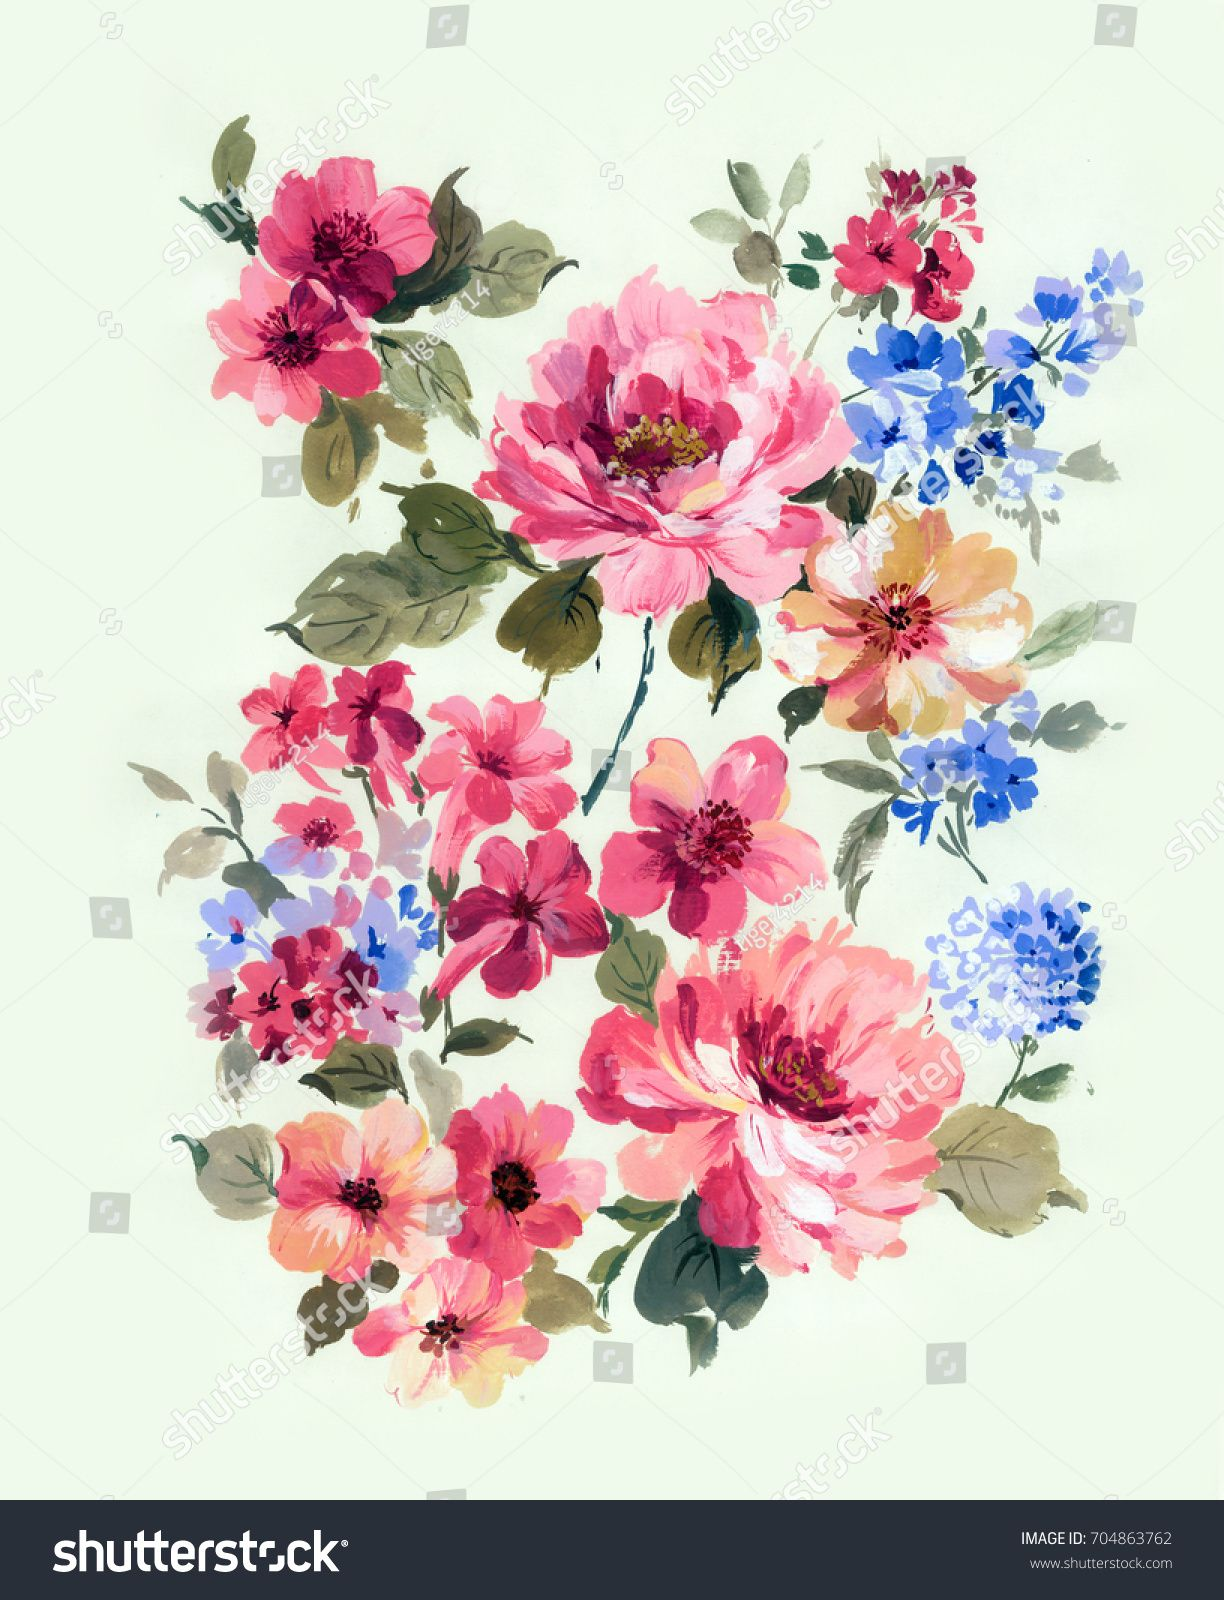 Enthusiasm Is Bold And Unrestrained Of Flowers The Leaves And Flowers Art Designunrestrained Bold Enthusiasm Flower Flower Painting Images Flower Art Leaf Art